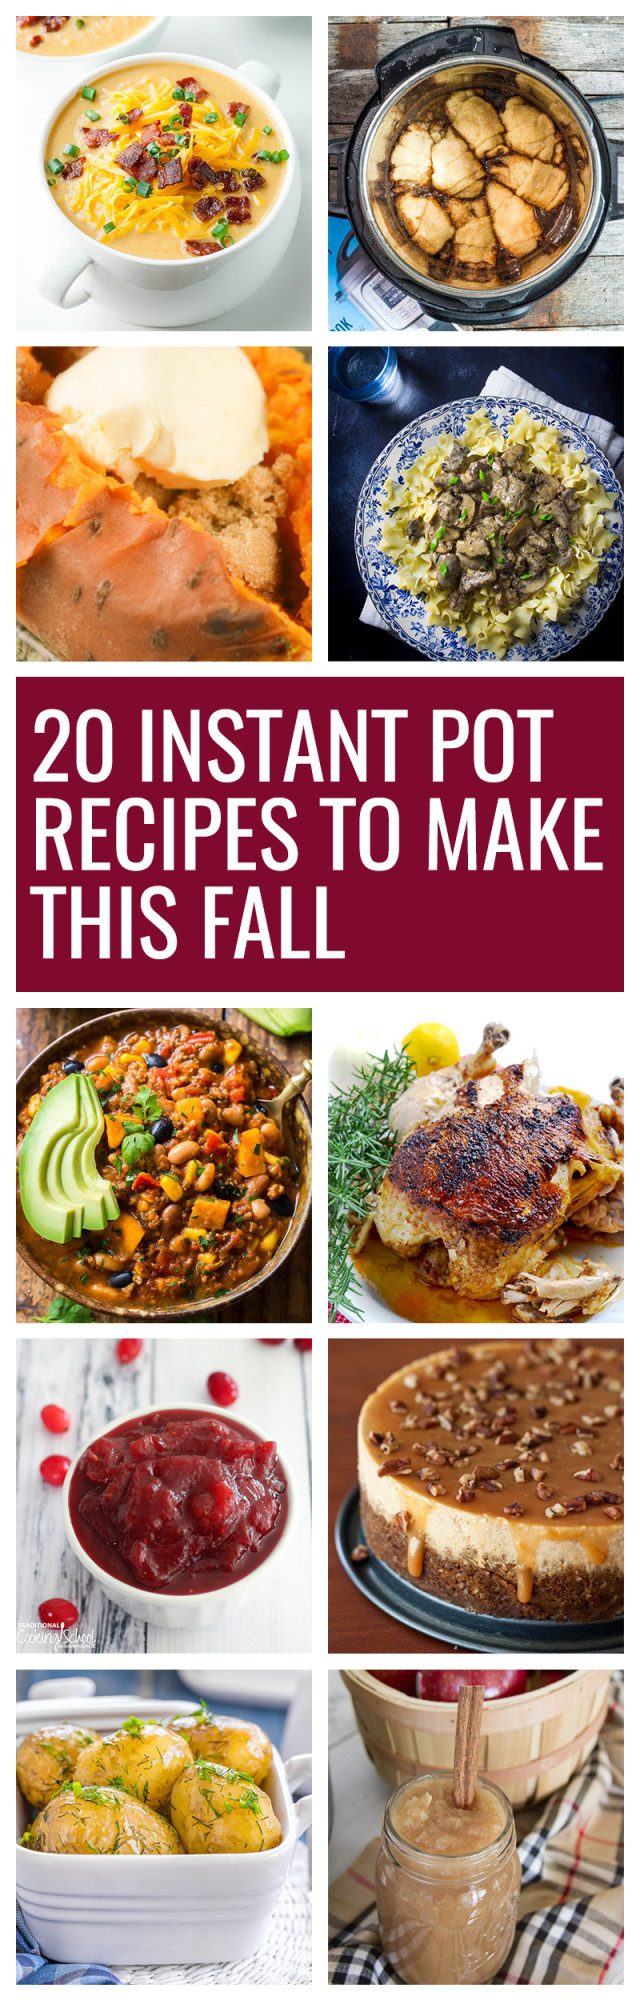 Instant Pot Fall Recipes  20 Fall Instant Pot Recipes